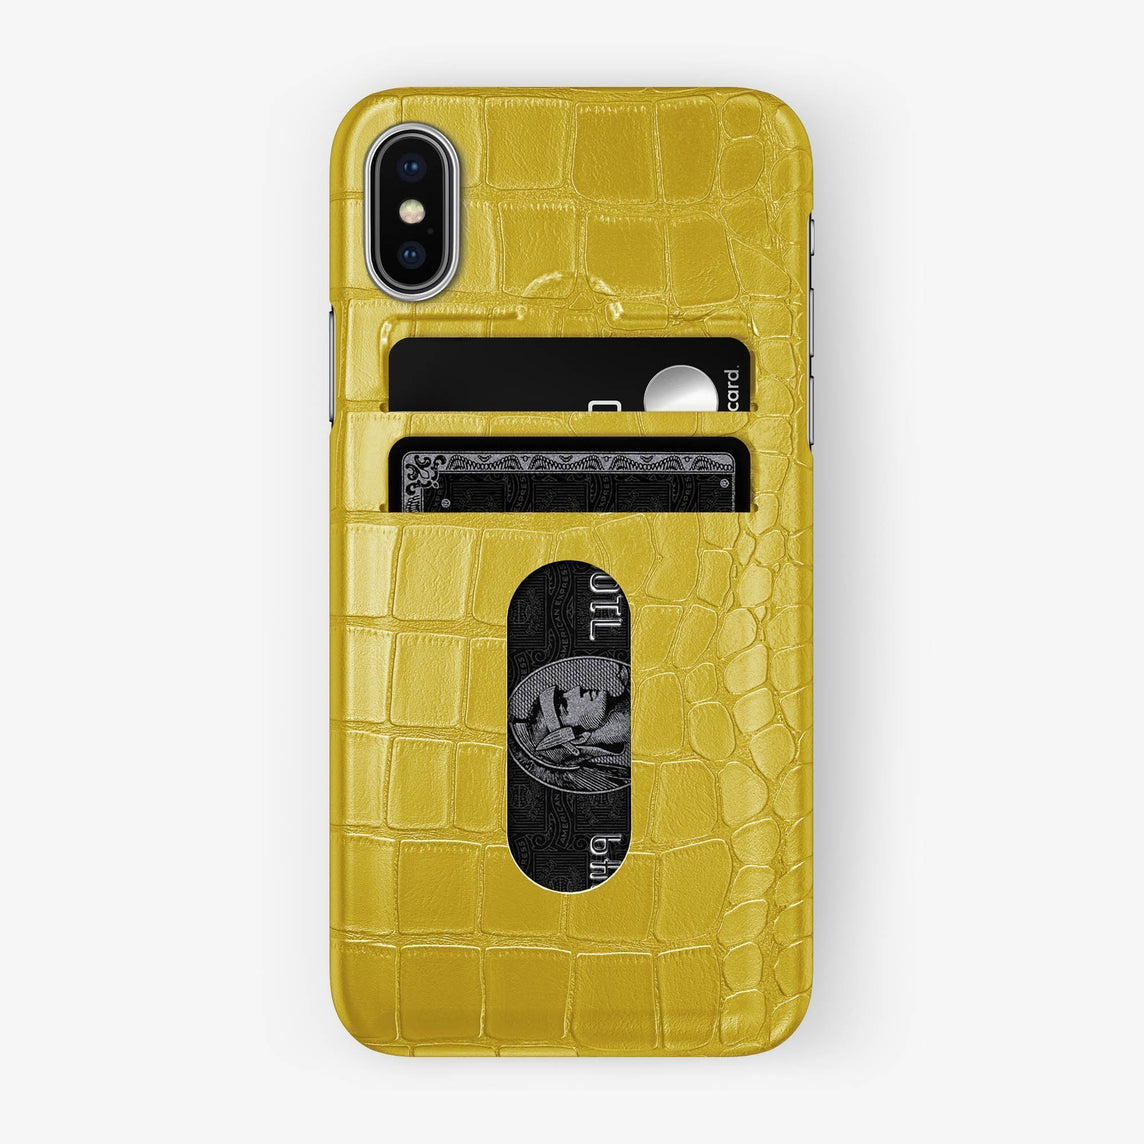 Alligator Card Holder Case iPhone Xs Max | Yellow - Stainless Steel - Hadoro